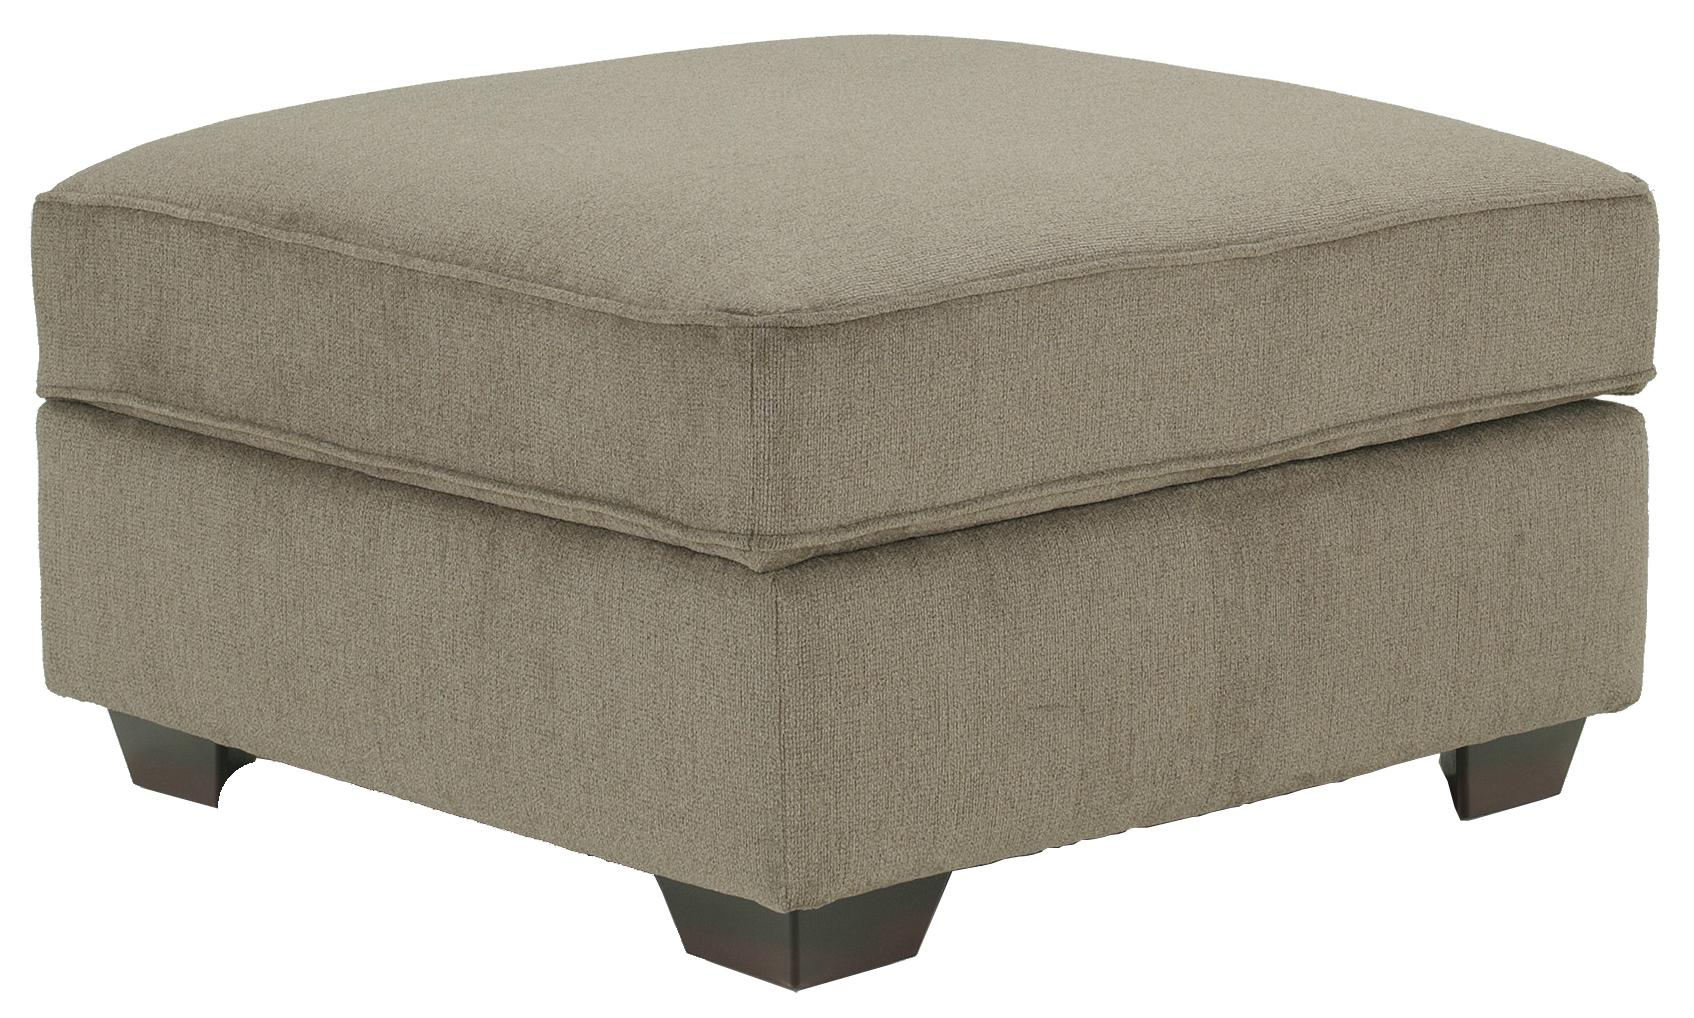 Patola Park - Patina Ottoman With Storage by Ashley Furniture at Lapeer Furniture & Mattress Center